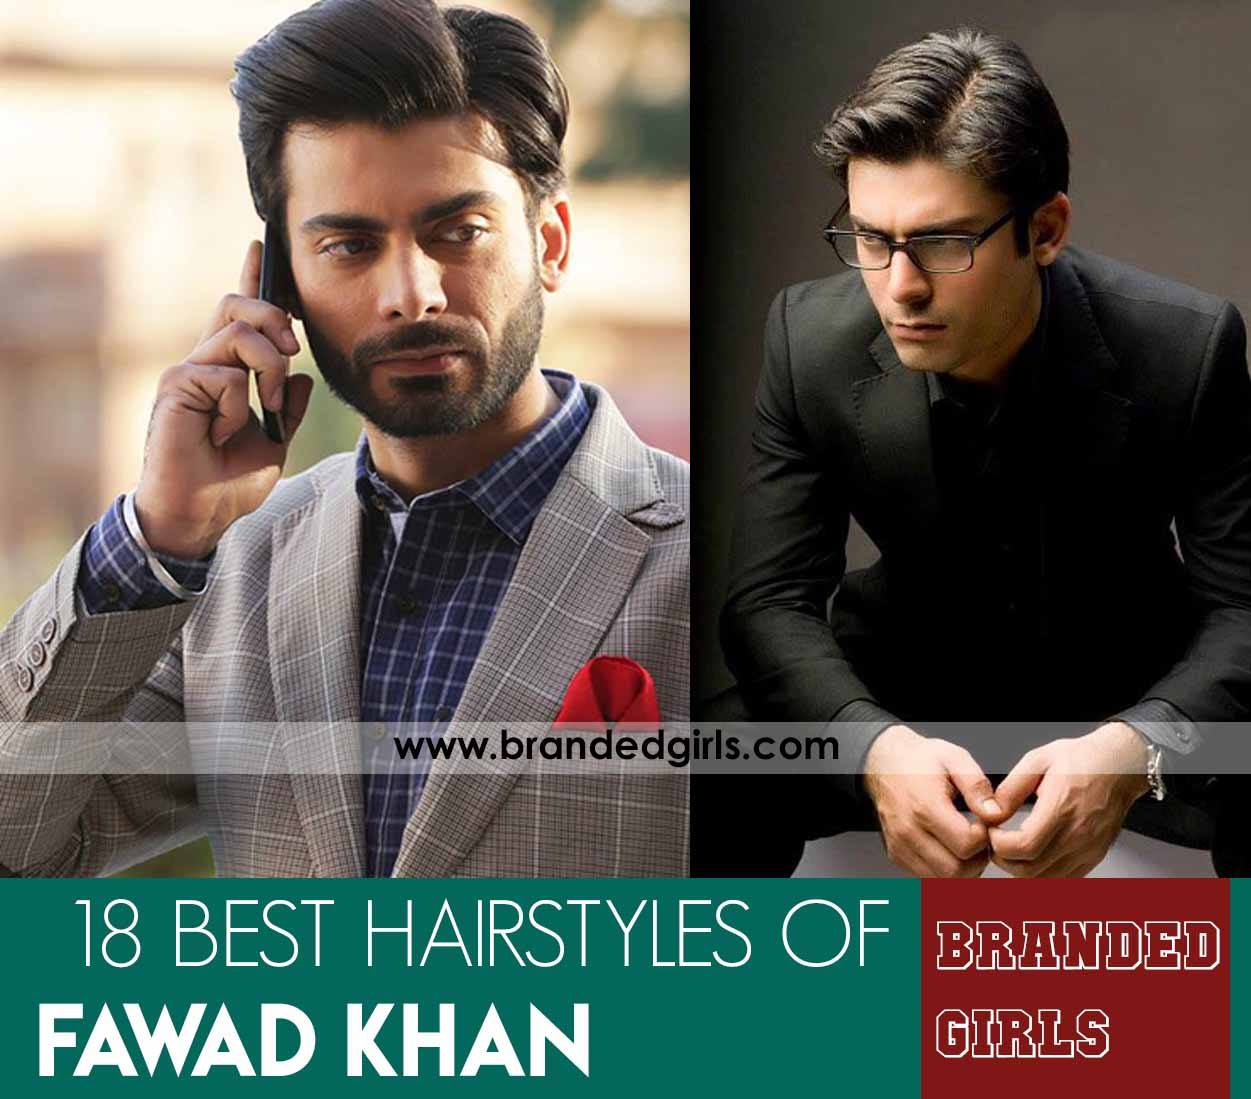 polyvore-sample-2 Fawad Khan Hairstyles-18 Top Haircuts of Fawad Khan of all time